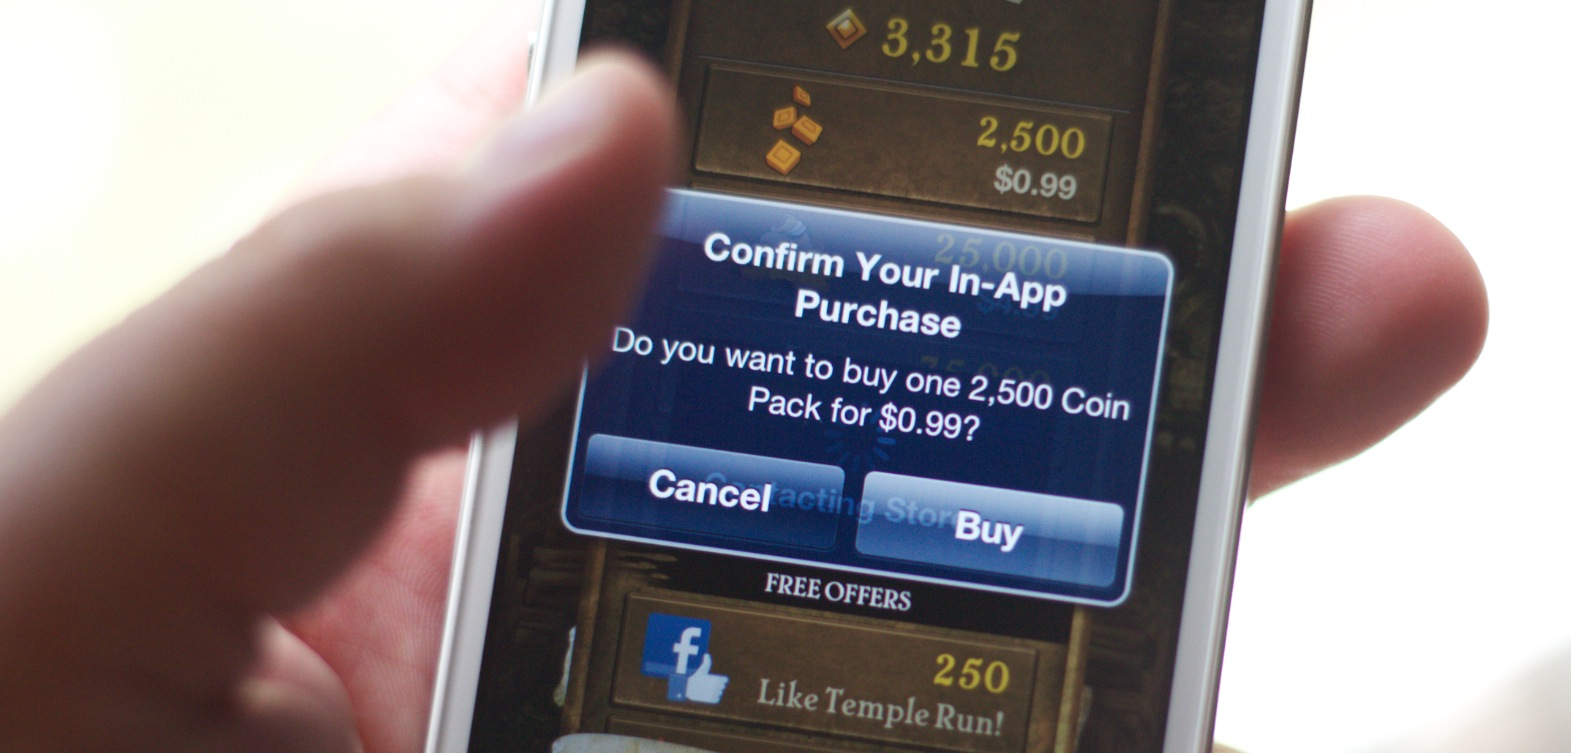 Apple begins bid to block in-app purchasing flaw, but service remains operational (for now)